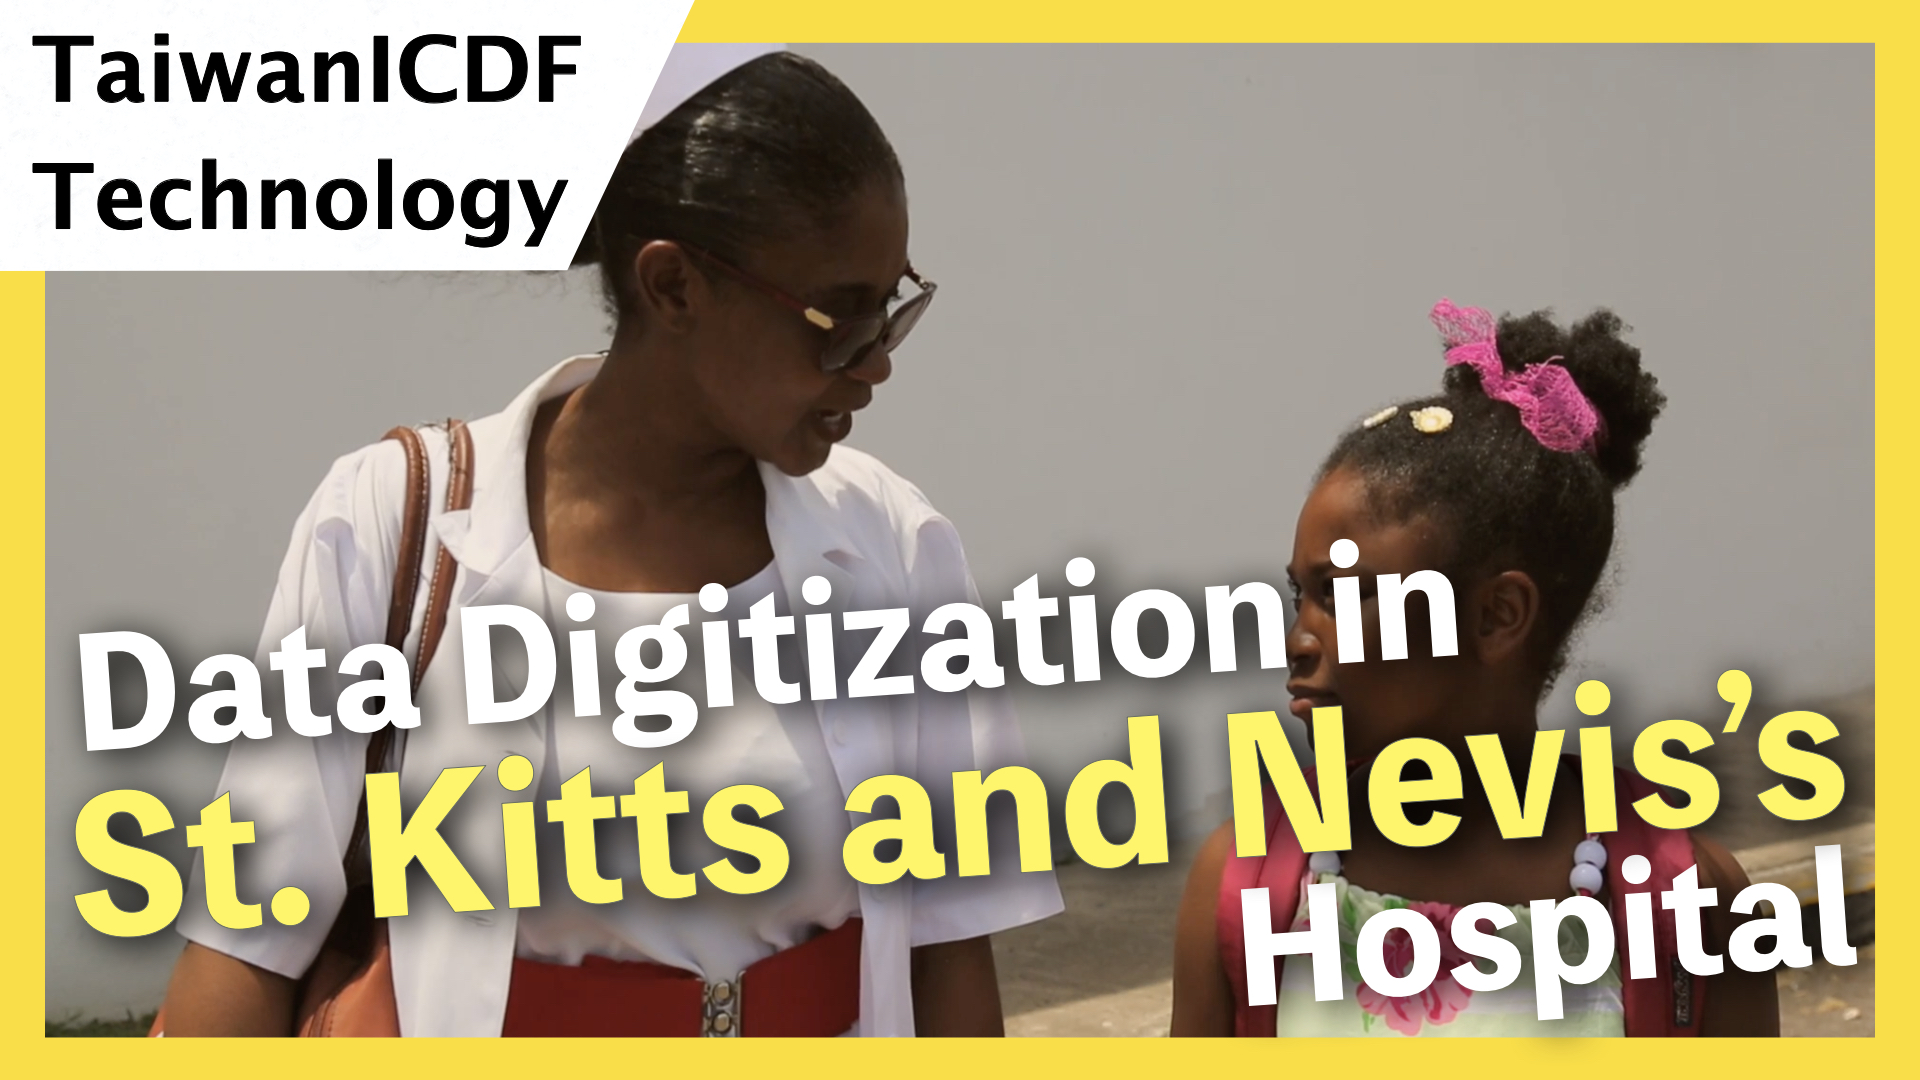 Information and Communication Technology (ICT) Project (St. Kitts and Nevis)